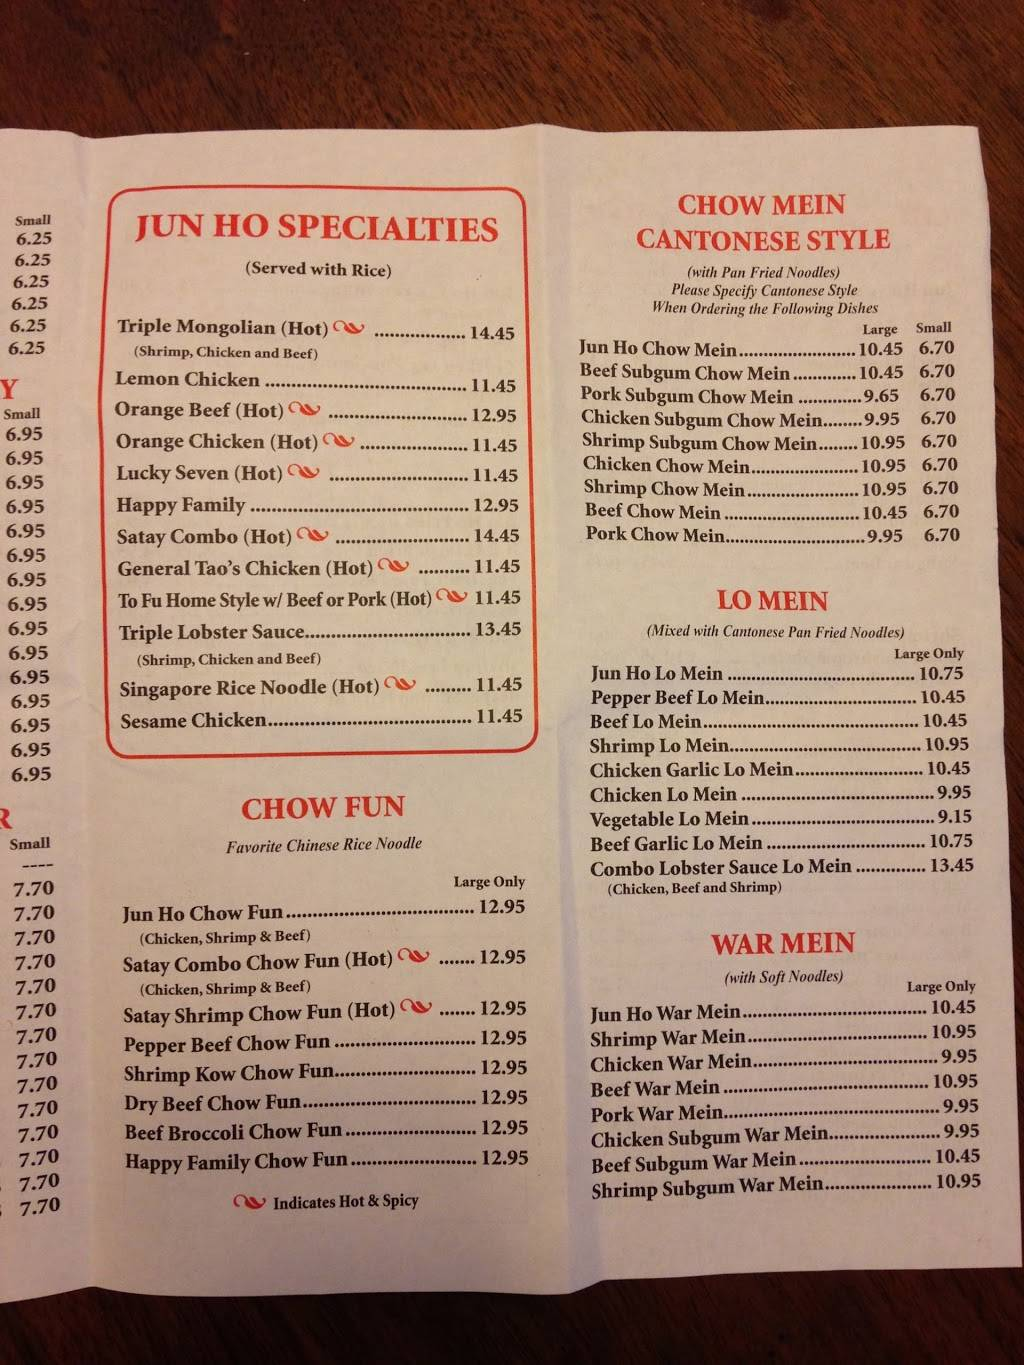 Jun Ho Carryout | restaurant | 789 S Midlothian Rd, Mundelein, IL 60060, USA | 8478370088 OR +1 847-837-0088